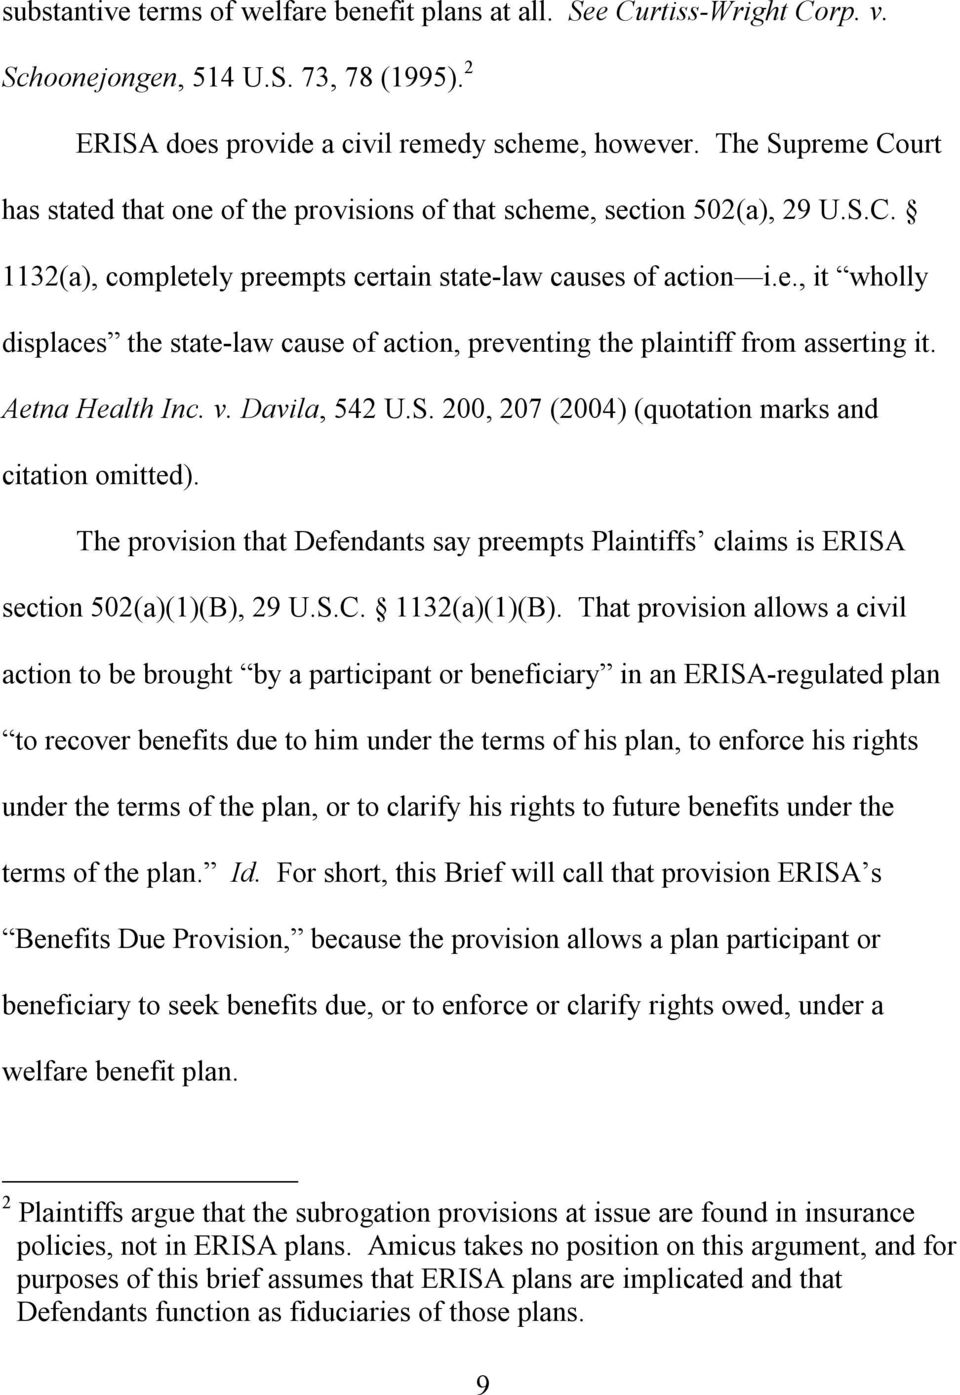 Aetna Health Inc. v. Davila, 542 U.S. 200, 207 (2004) (quotation marks and citation omitted). The provision that Defendants say preempts Plaintiffs claims is ERISA section 502(a)(1)(B), 29 U.S.C.